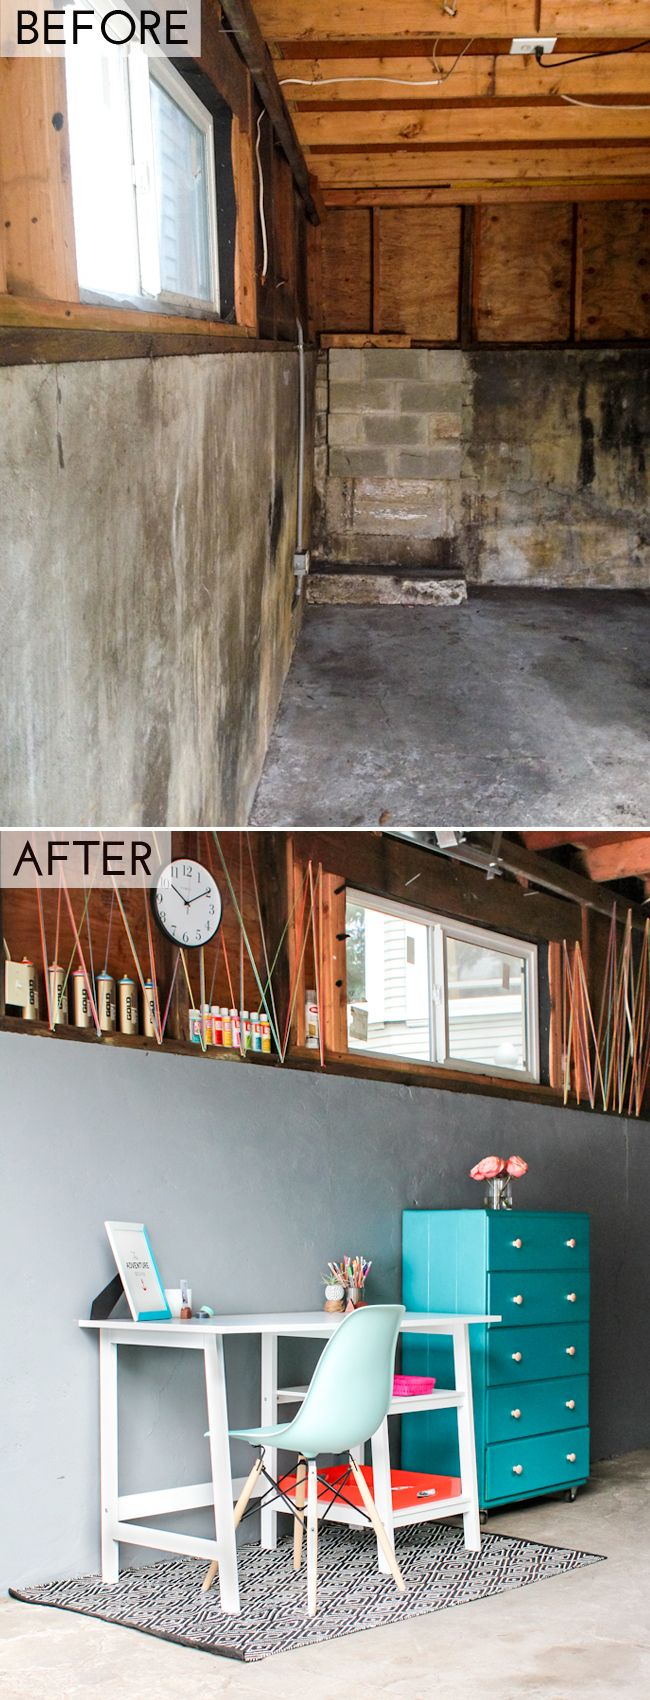 Amazing Garage Makeover by The Crafted Life